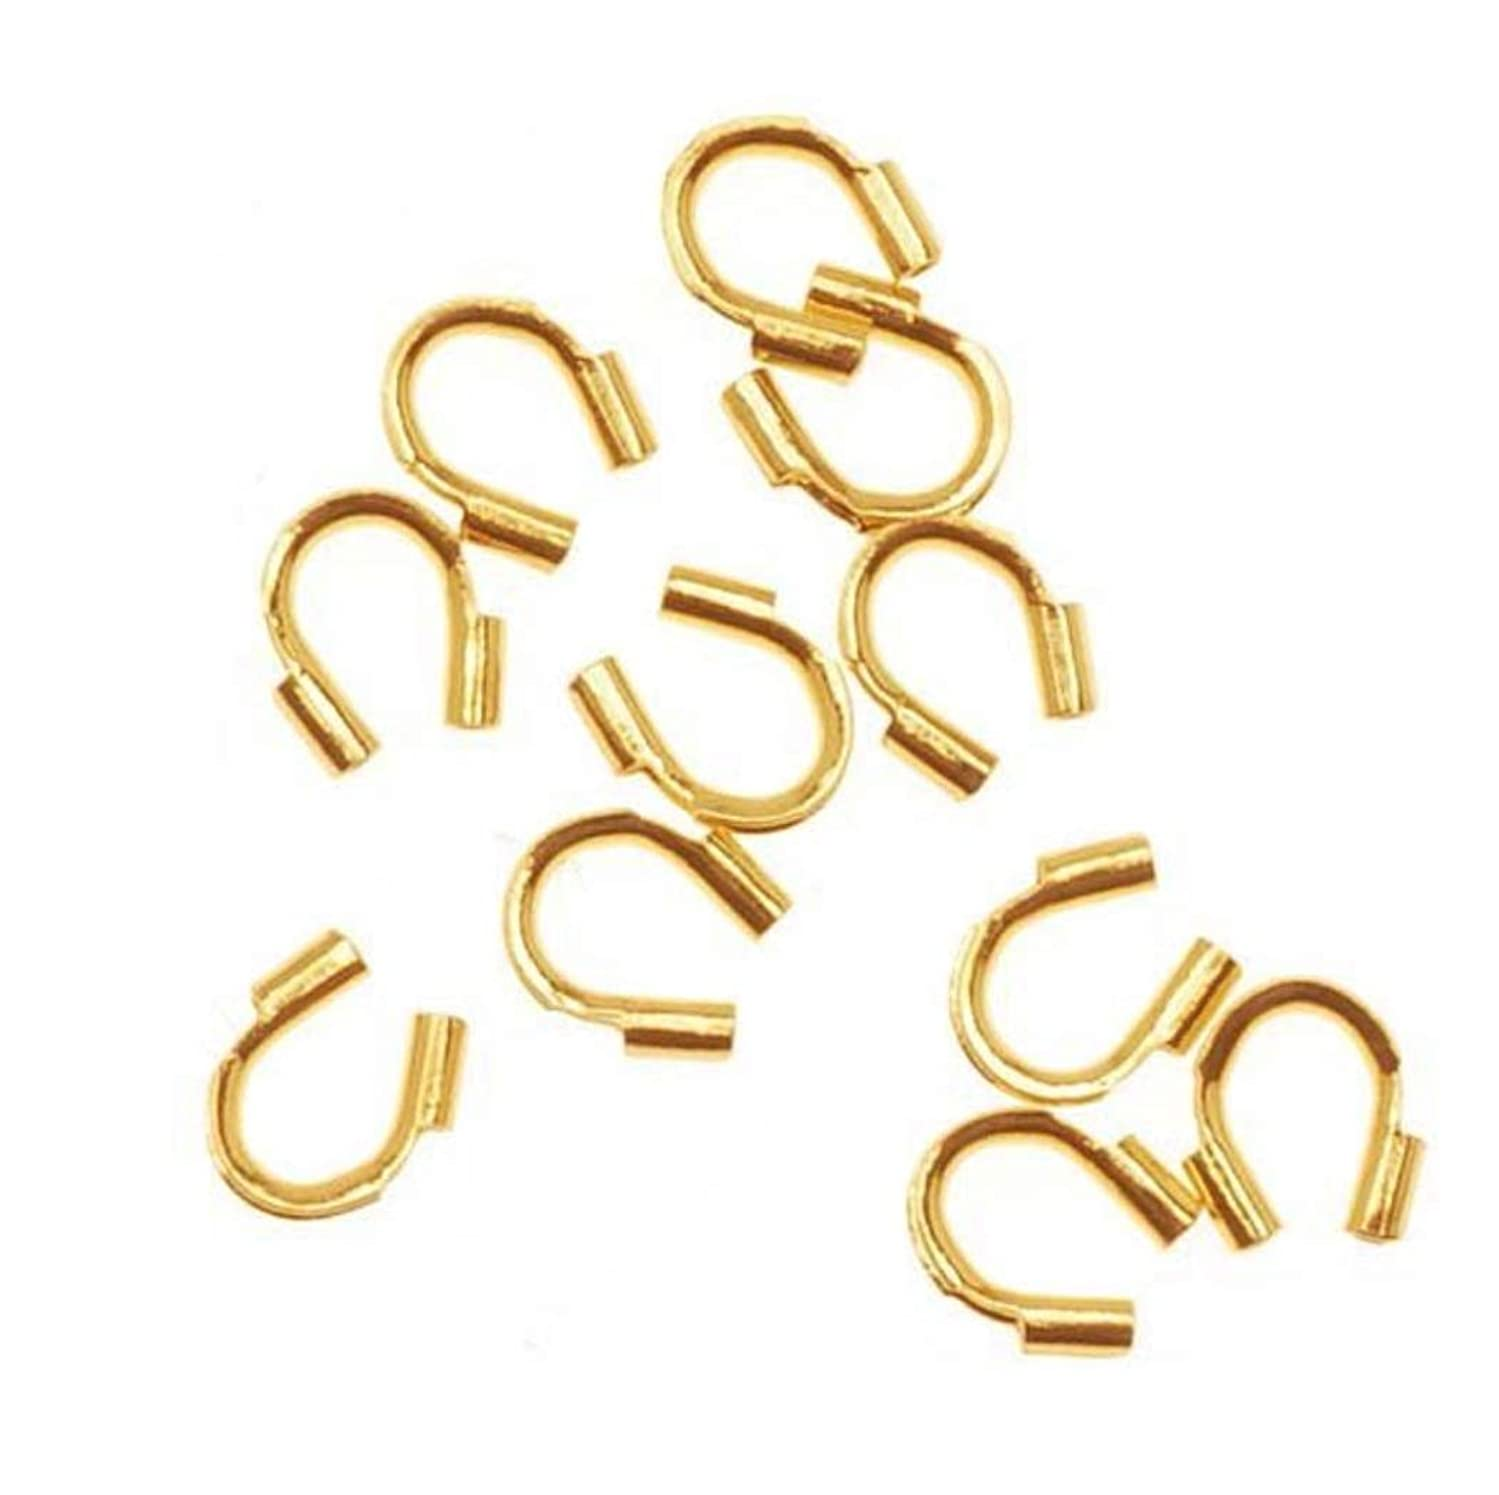 200pcs Top Quality Wire Guard Thread Protector Loop Guardian Gold Plated Brass Metal (Hole ~ 0.02